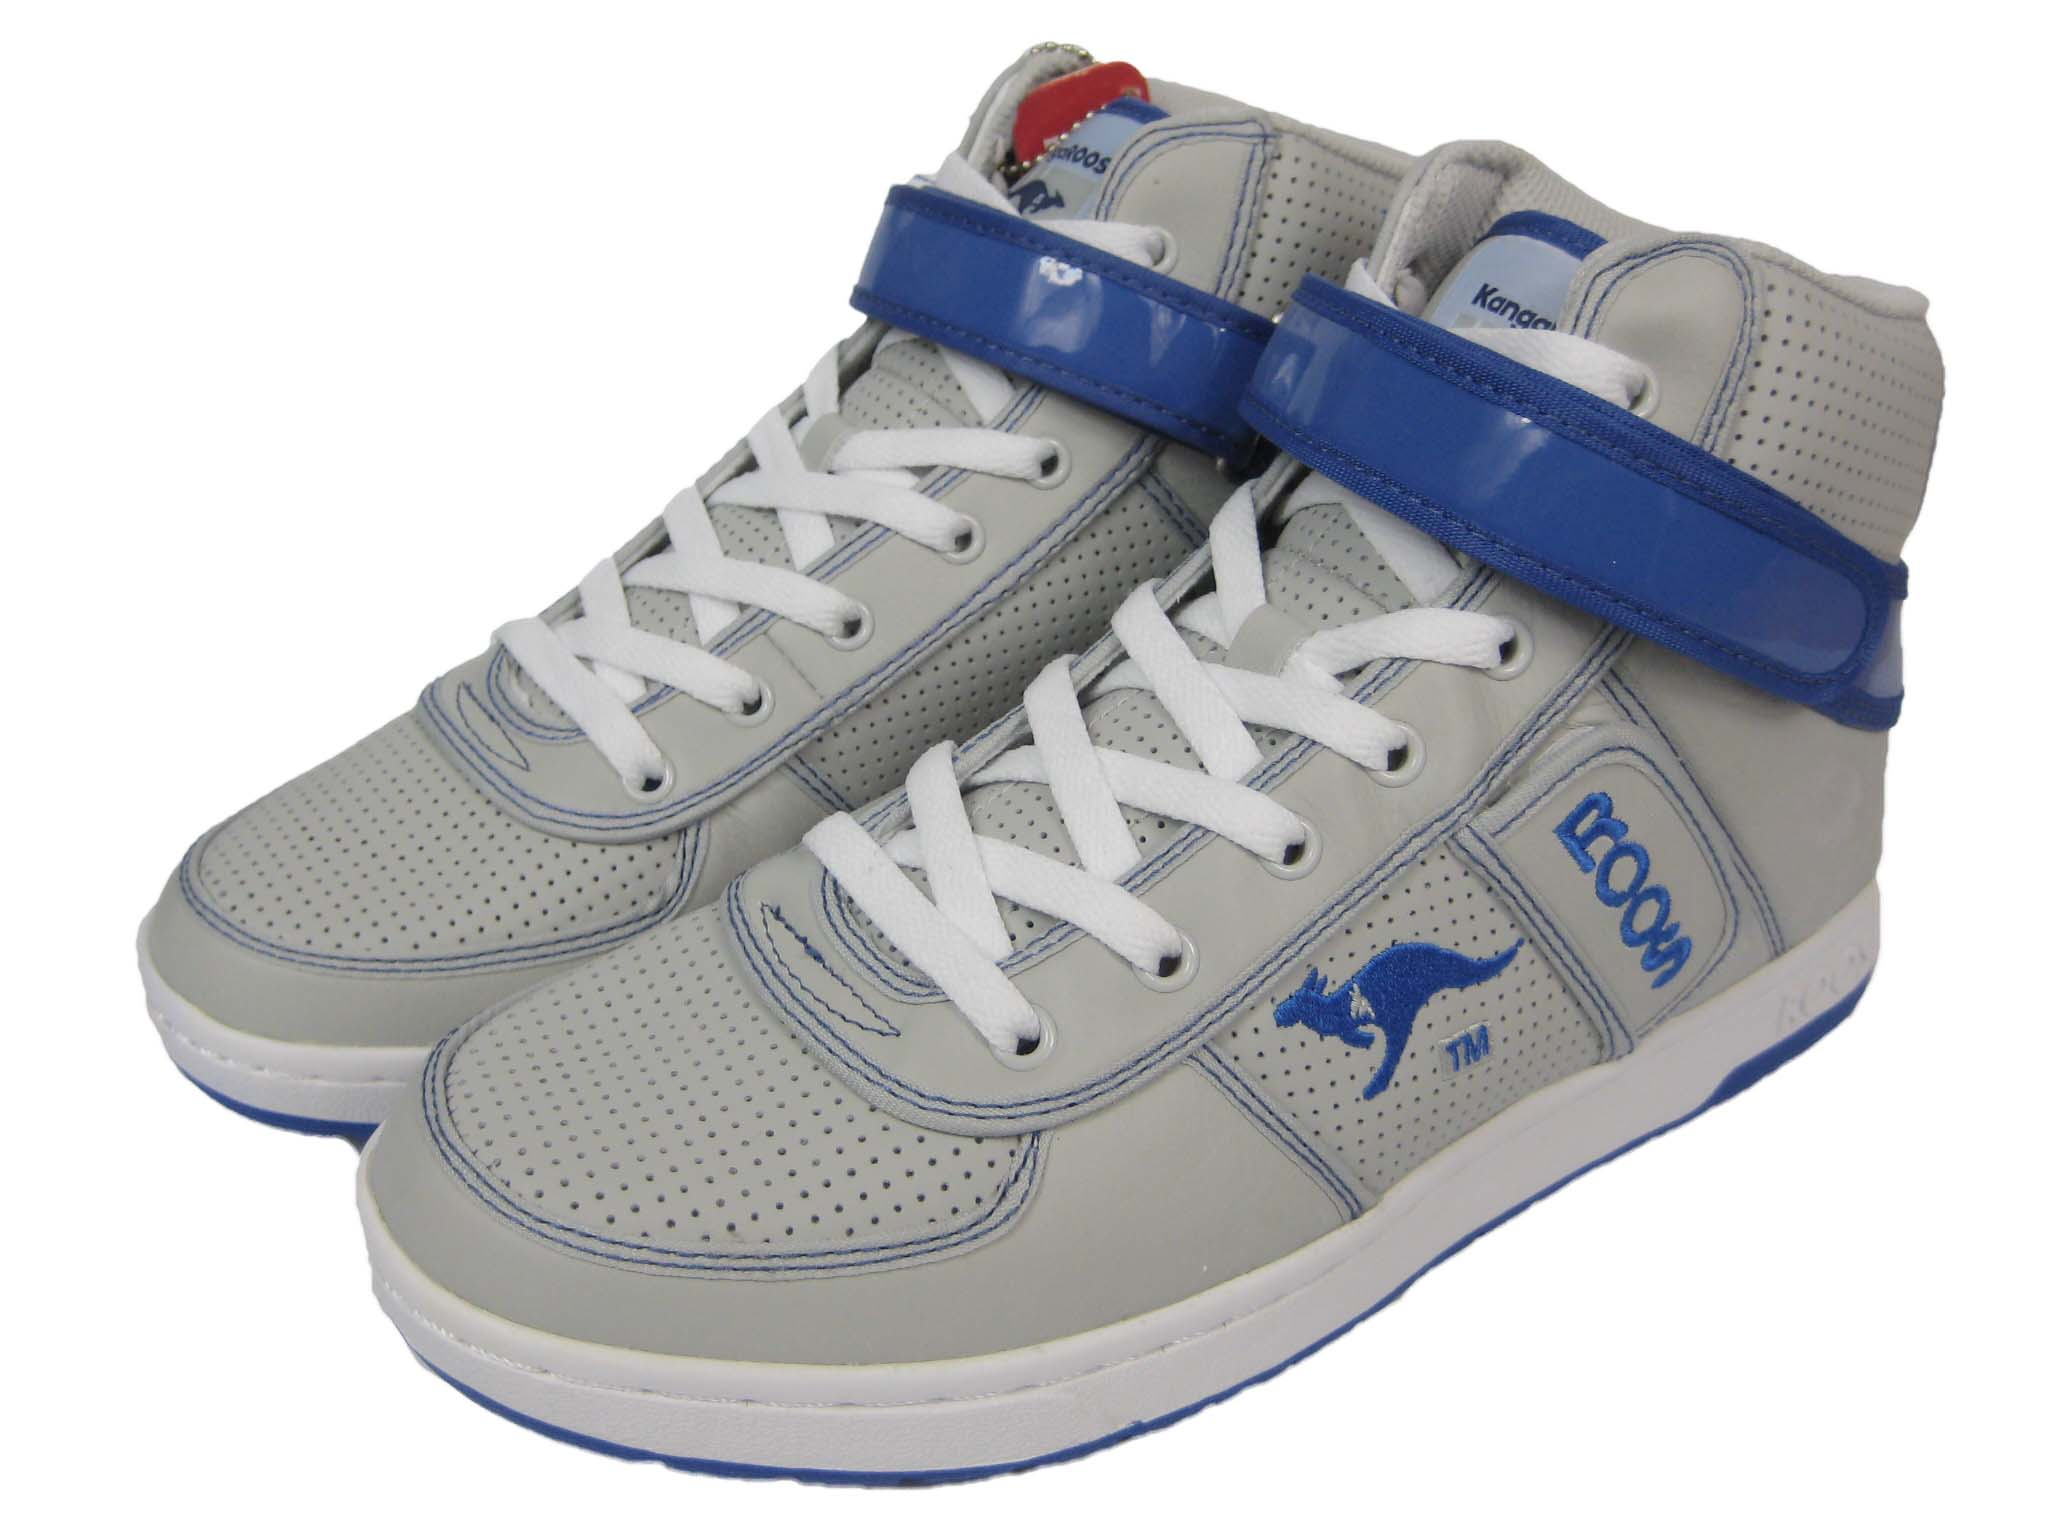 super popular 6433e b0ffc KangaROOS Skywalker-III 47004 Herren Schuhe Sneaker High Top grau / blau